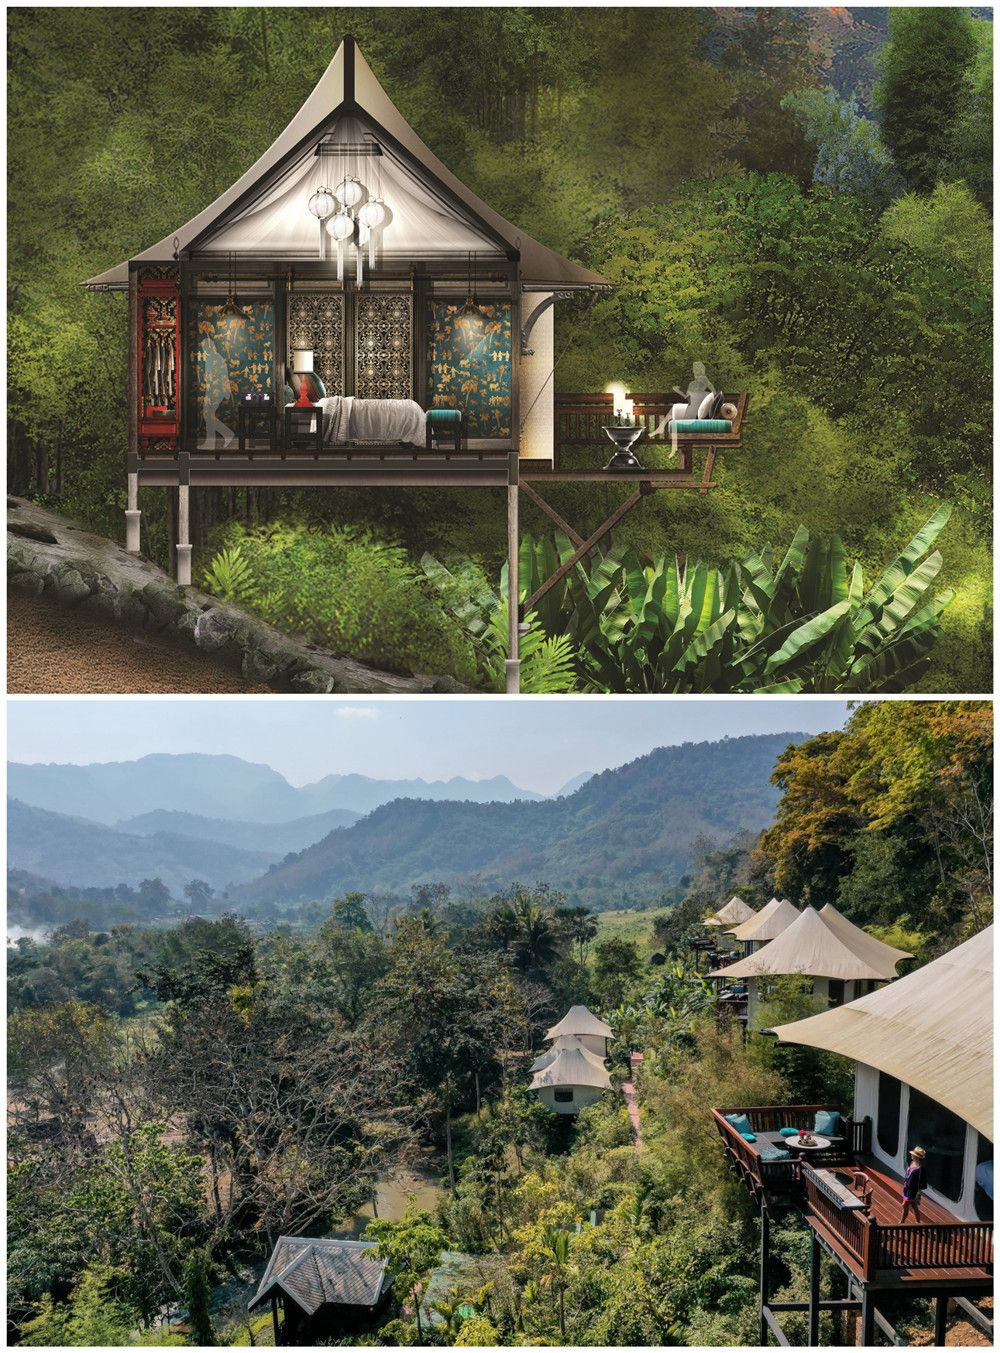 Rosewood Resort with Luxury Tents opens in Laos | Forest ...